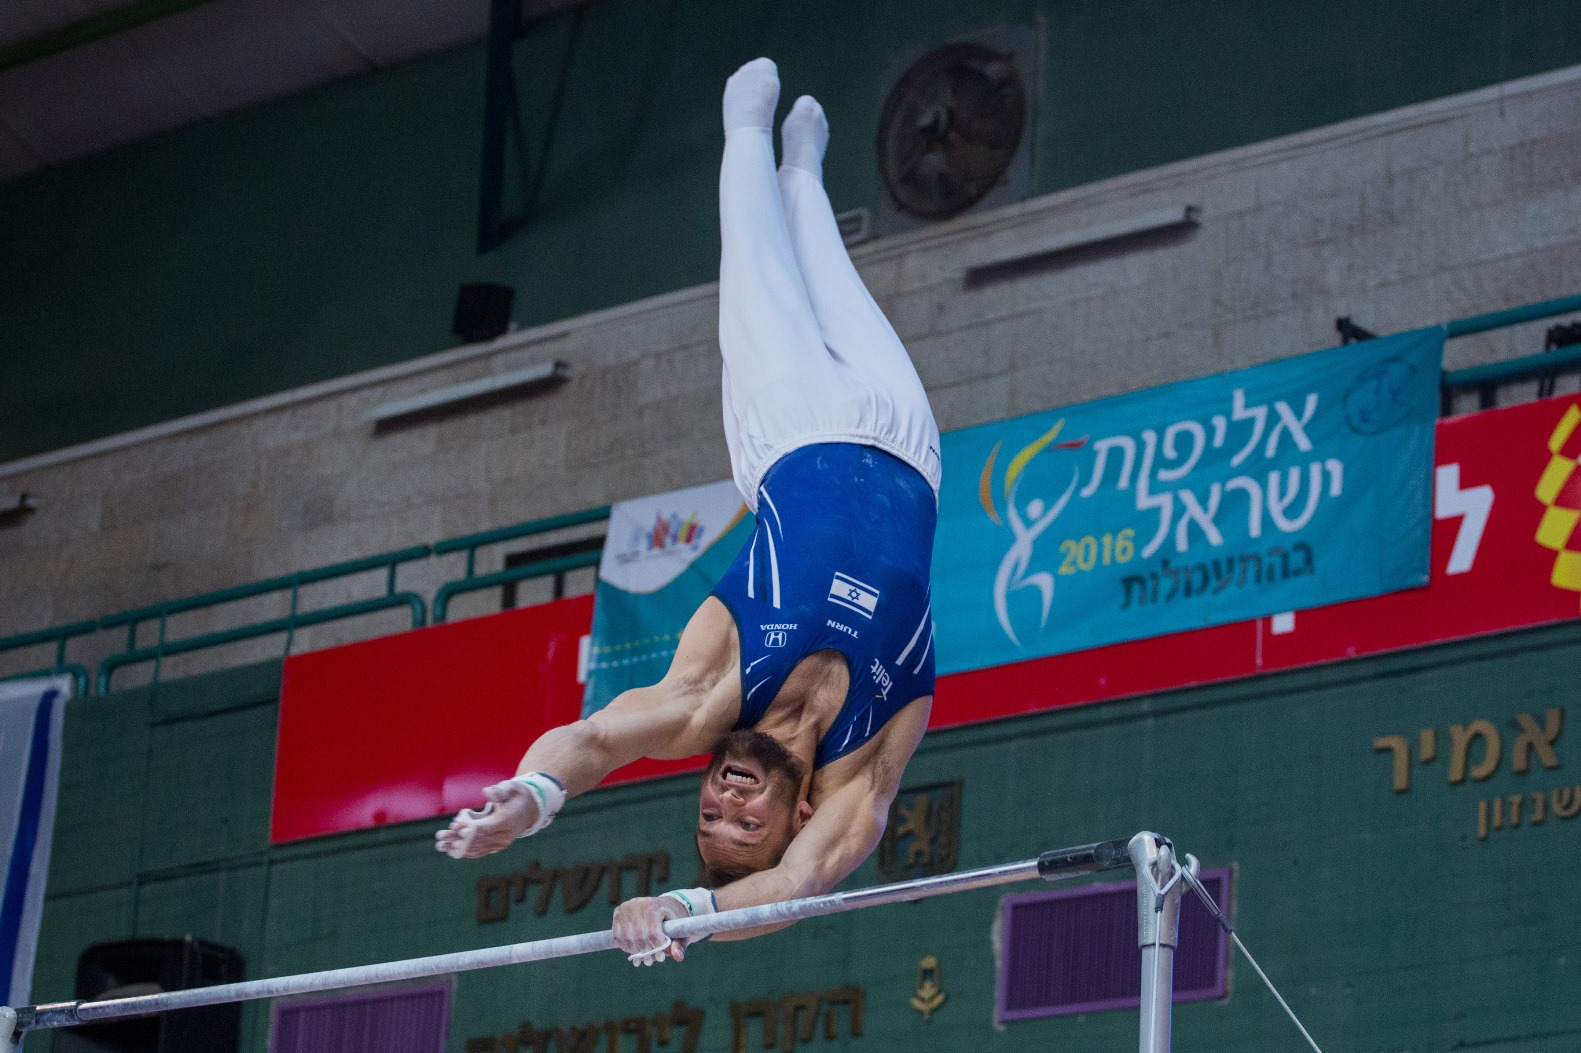 Alex Shatilov performing on the high bar during the Israel gymnastics championship in Jerusalem, April 6, 2016. Photo by Yonatan Sindel/FLASH90